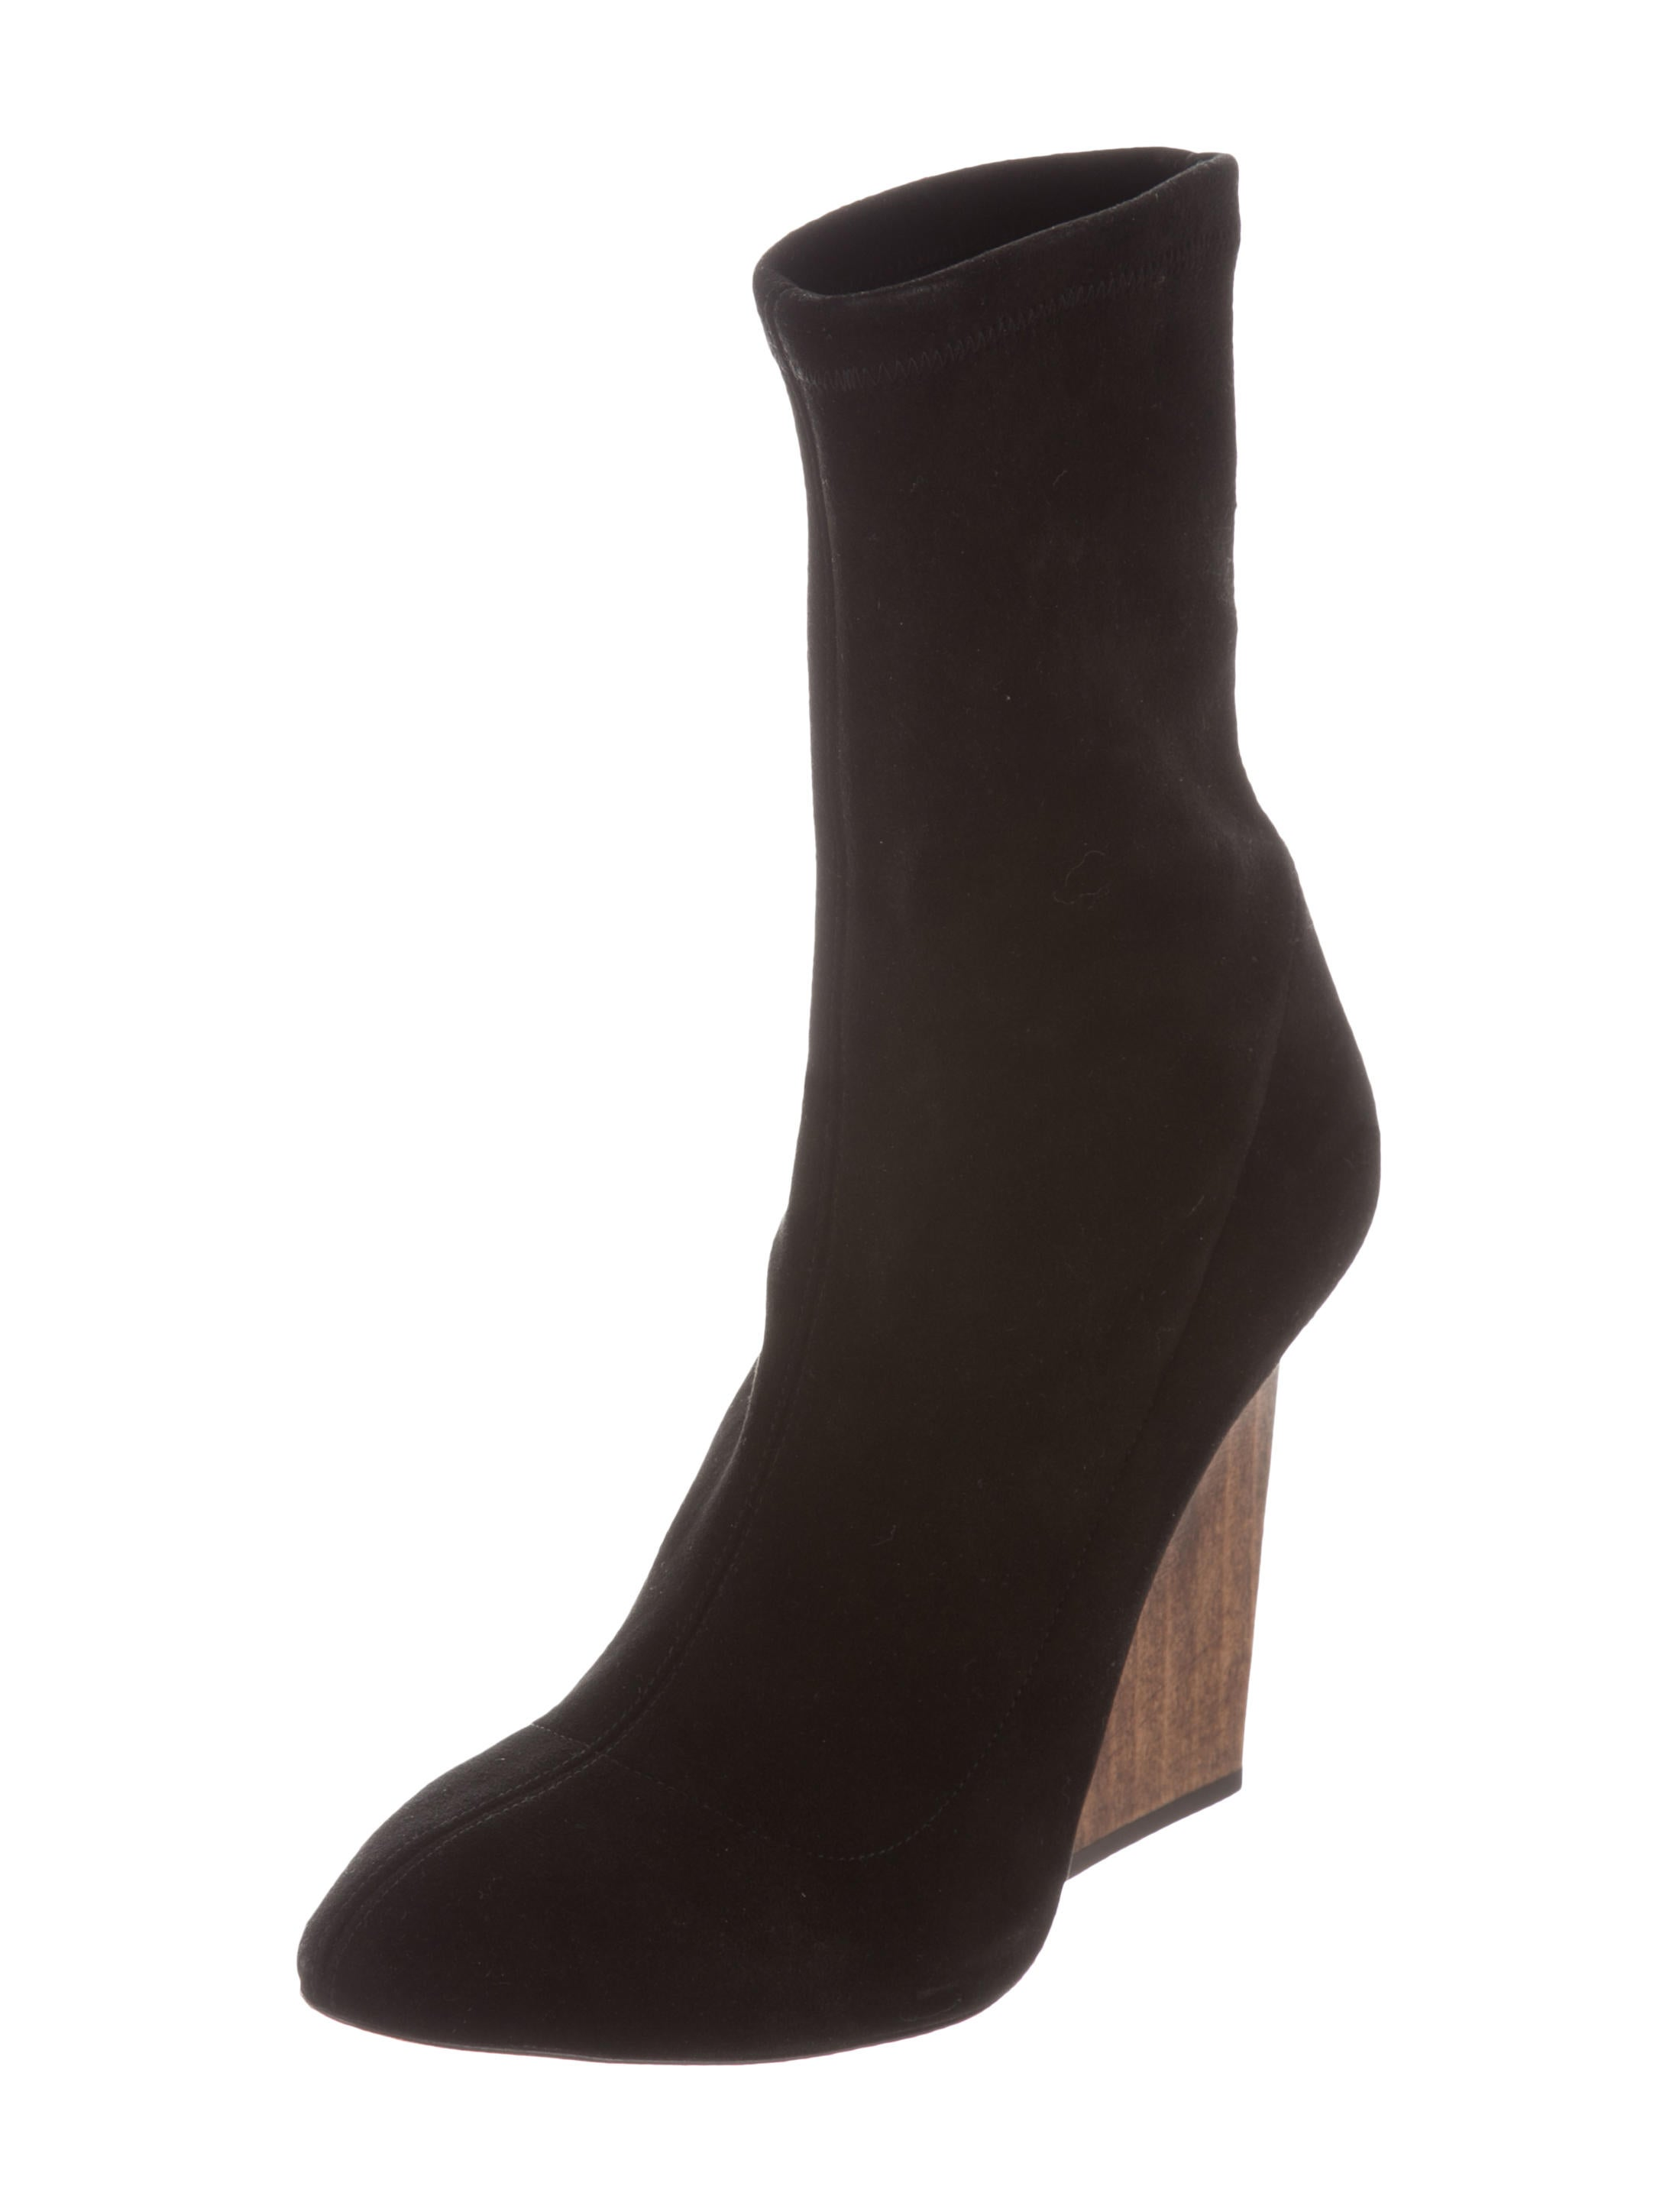 Maiyet Suede Pointed-Toe Ankle Boots sale browse ebay online affordable cheap price outlet 100% guaranteed discount Manchester y1JFogII4O